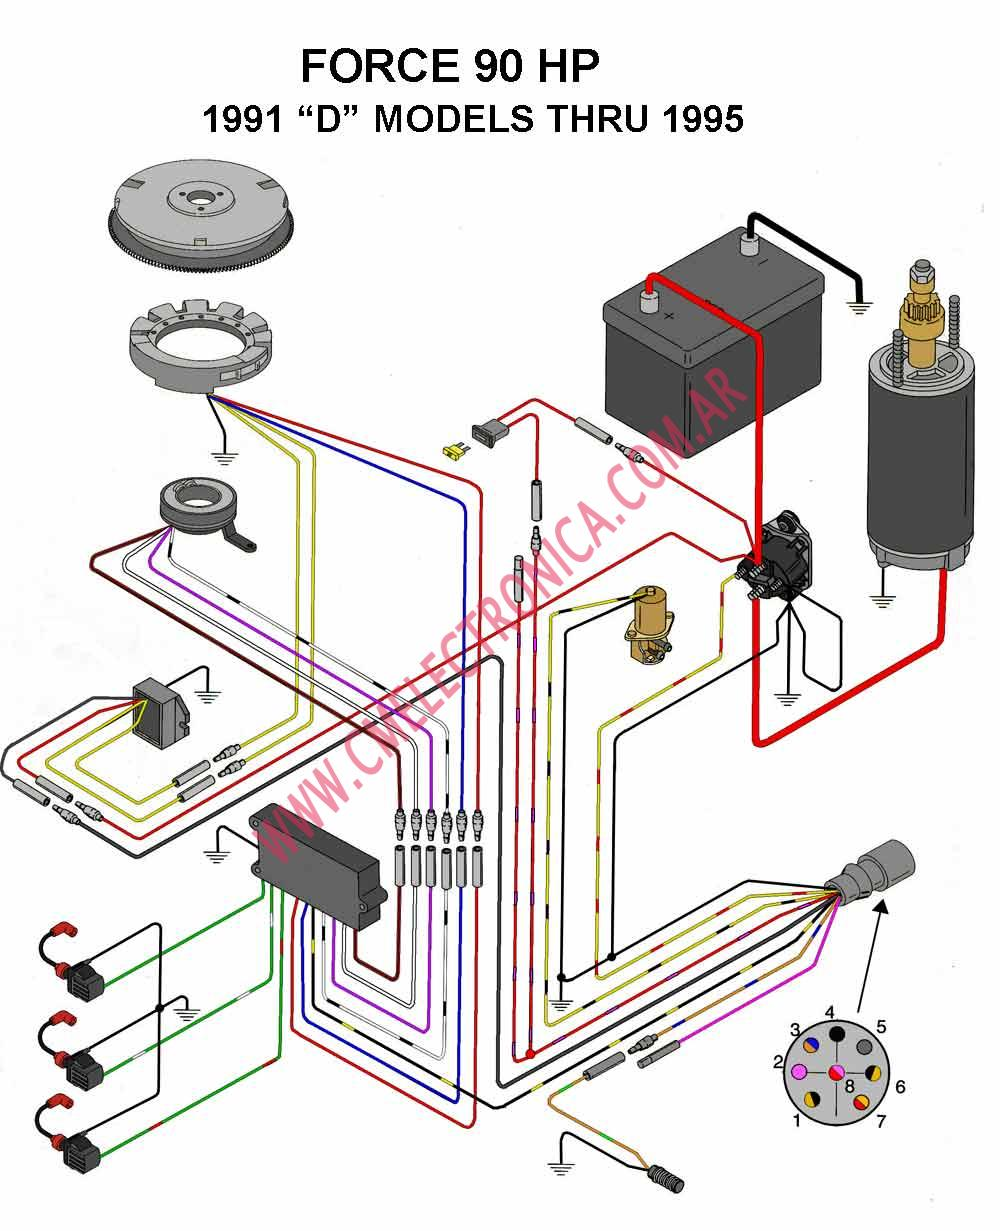 Hisun 500 Wiring Diagram 24 Images 800 Chrysler Force 90hp 1991d 1995 Polaris